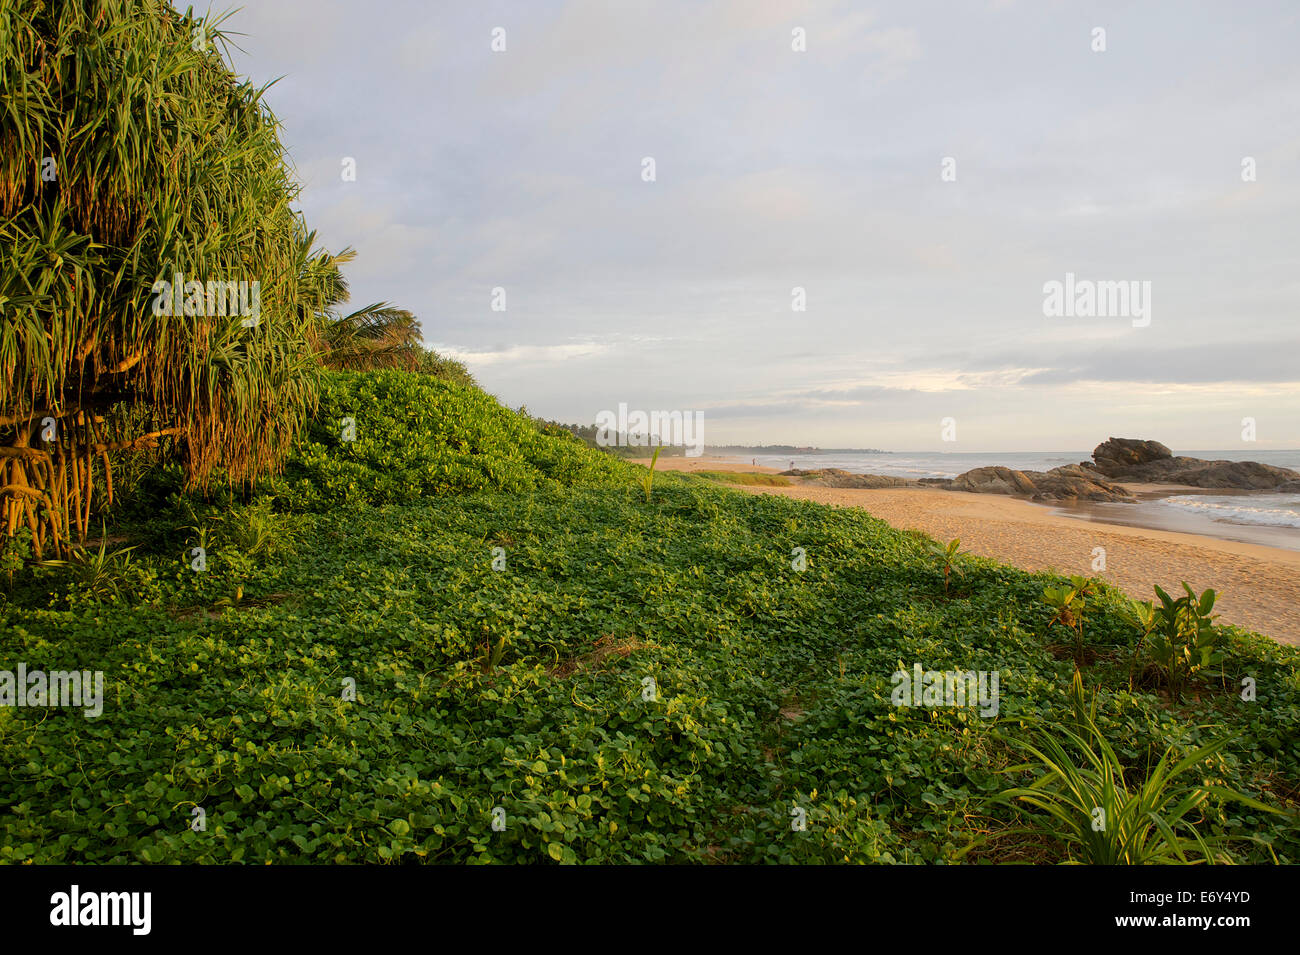 Long sandy beach fringed by tropical green and palm trees, Bentota, Southwest coast, Sri Lanka, South Asia - Stock Image